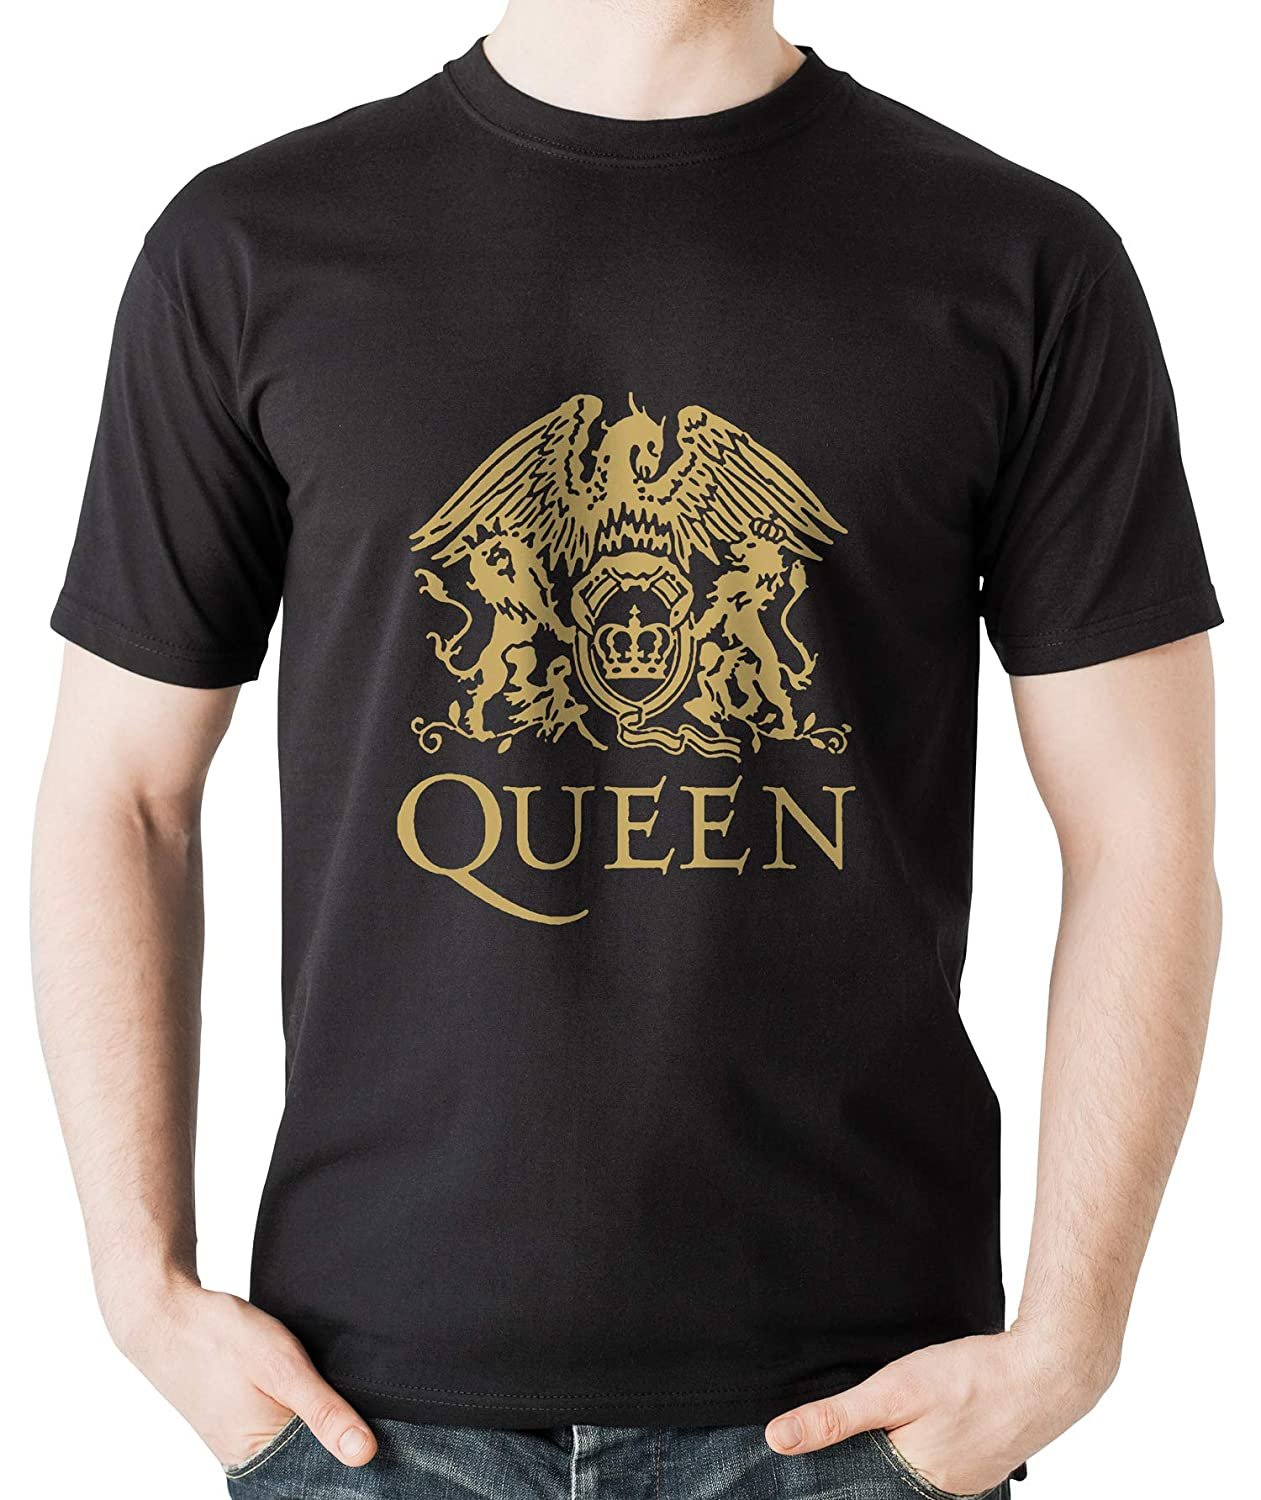 9aa5fc61c197 MankiTees Queen - Brian May - Classic Progressive Rock t Shirt - Rock Music  Band t Shirts for Rock Concerts and Headbangers - Hard Rock and Heavy Metal  ...